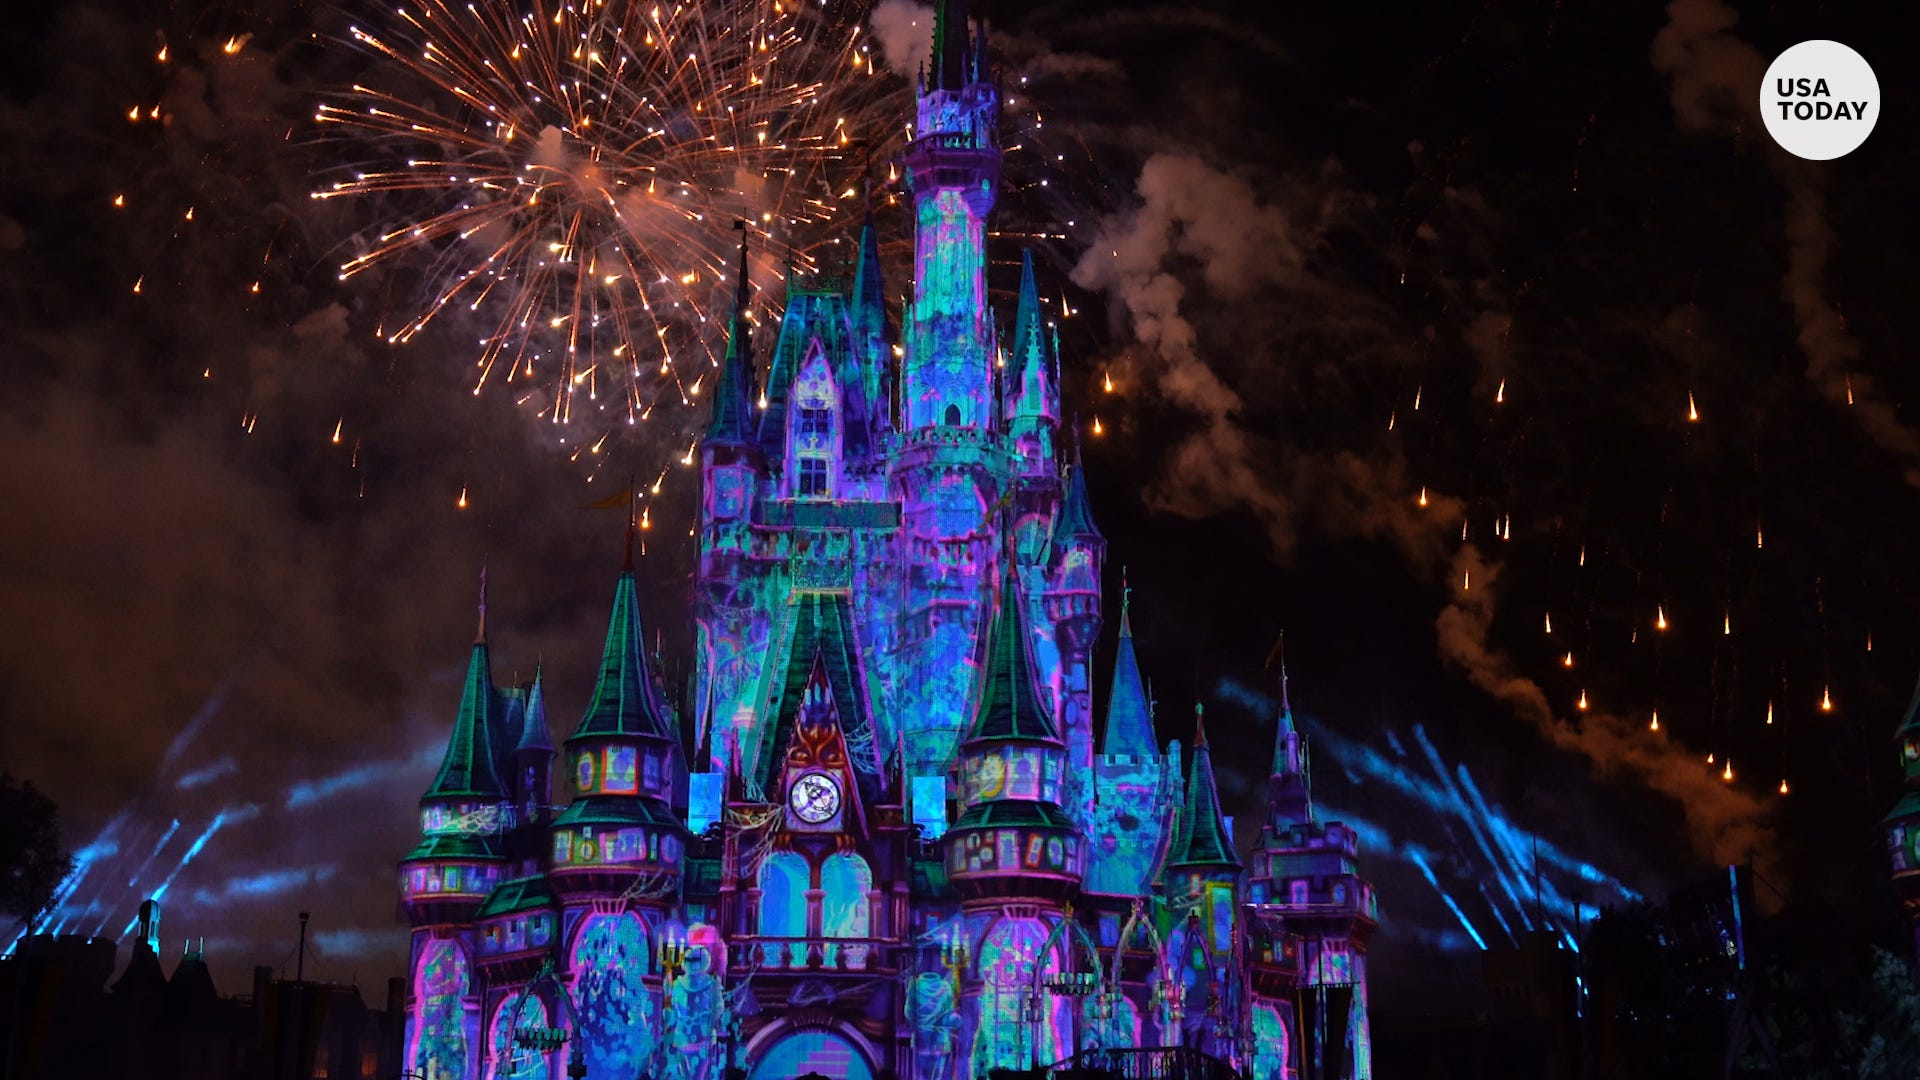 Disney brings the tricks and treats to Mickey's Not-So-Scary Halloween Party